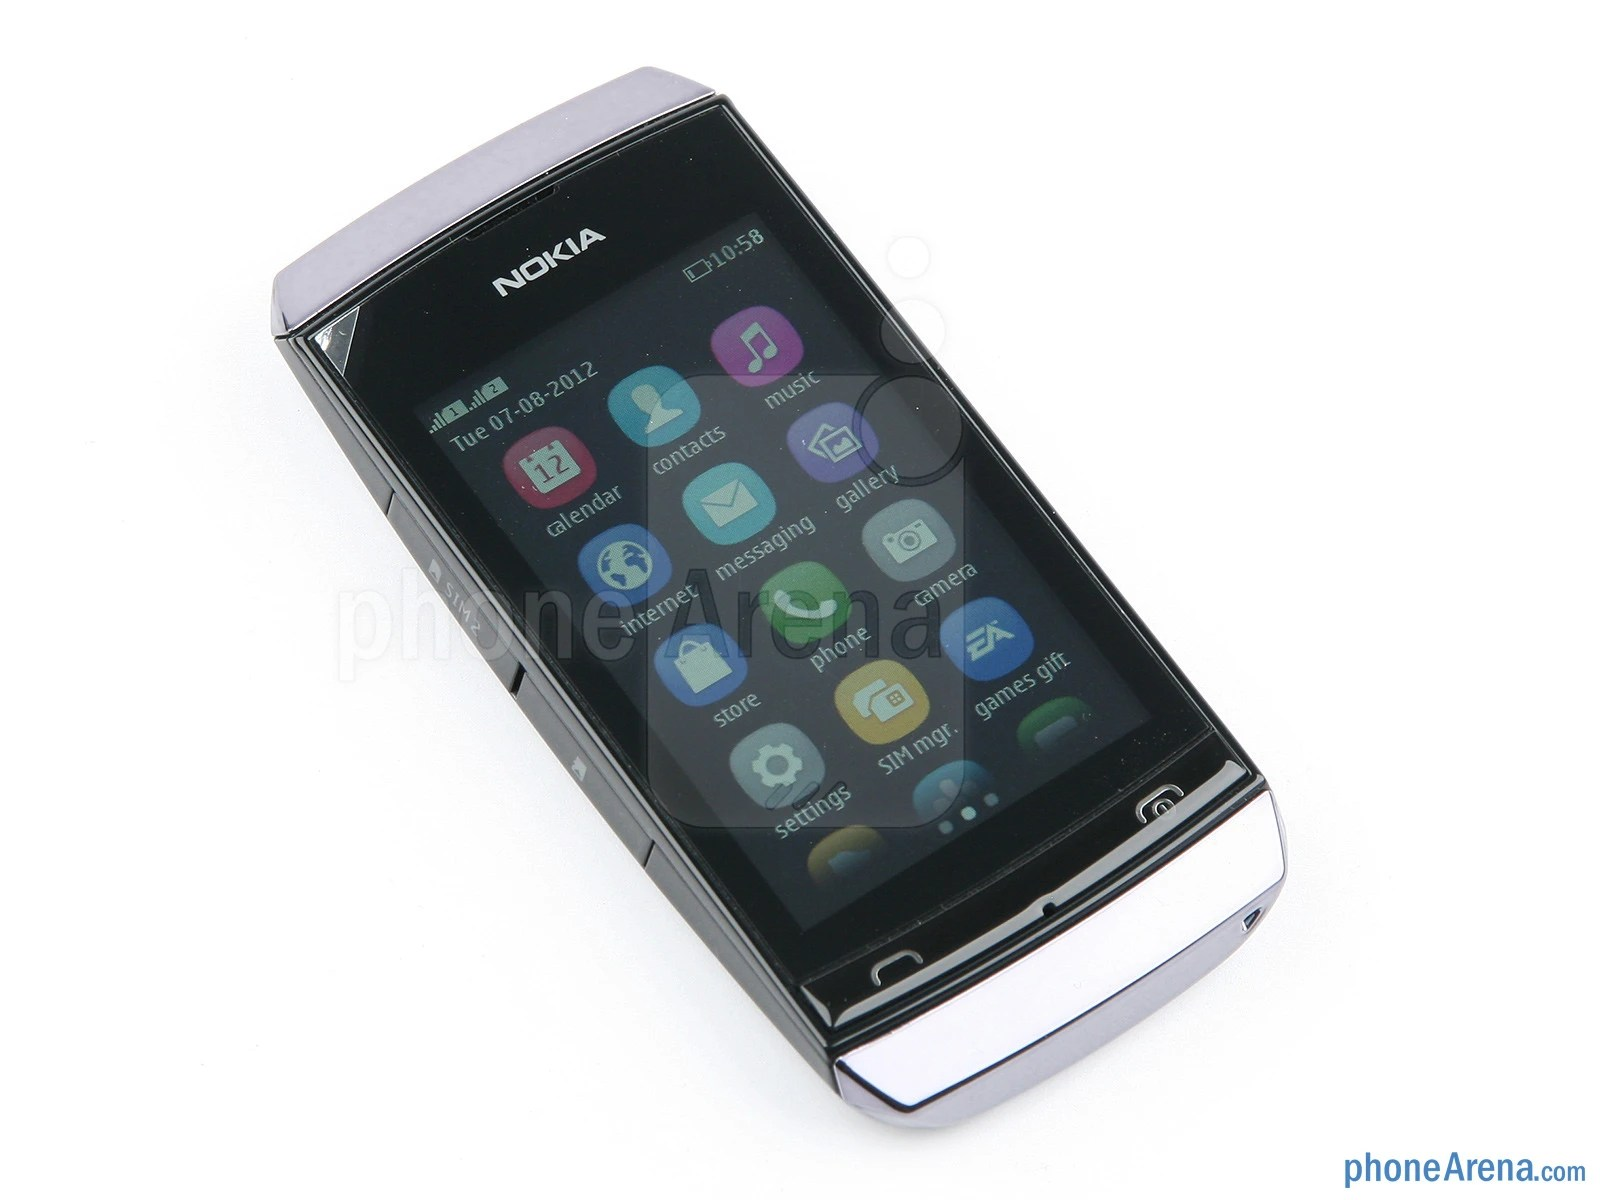 All Things We Like Nokia Asha 305 Review